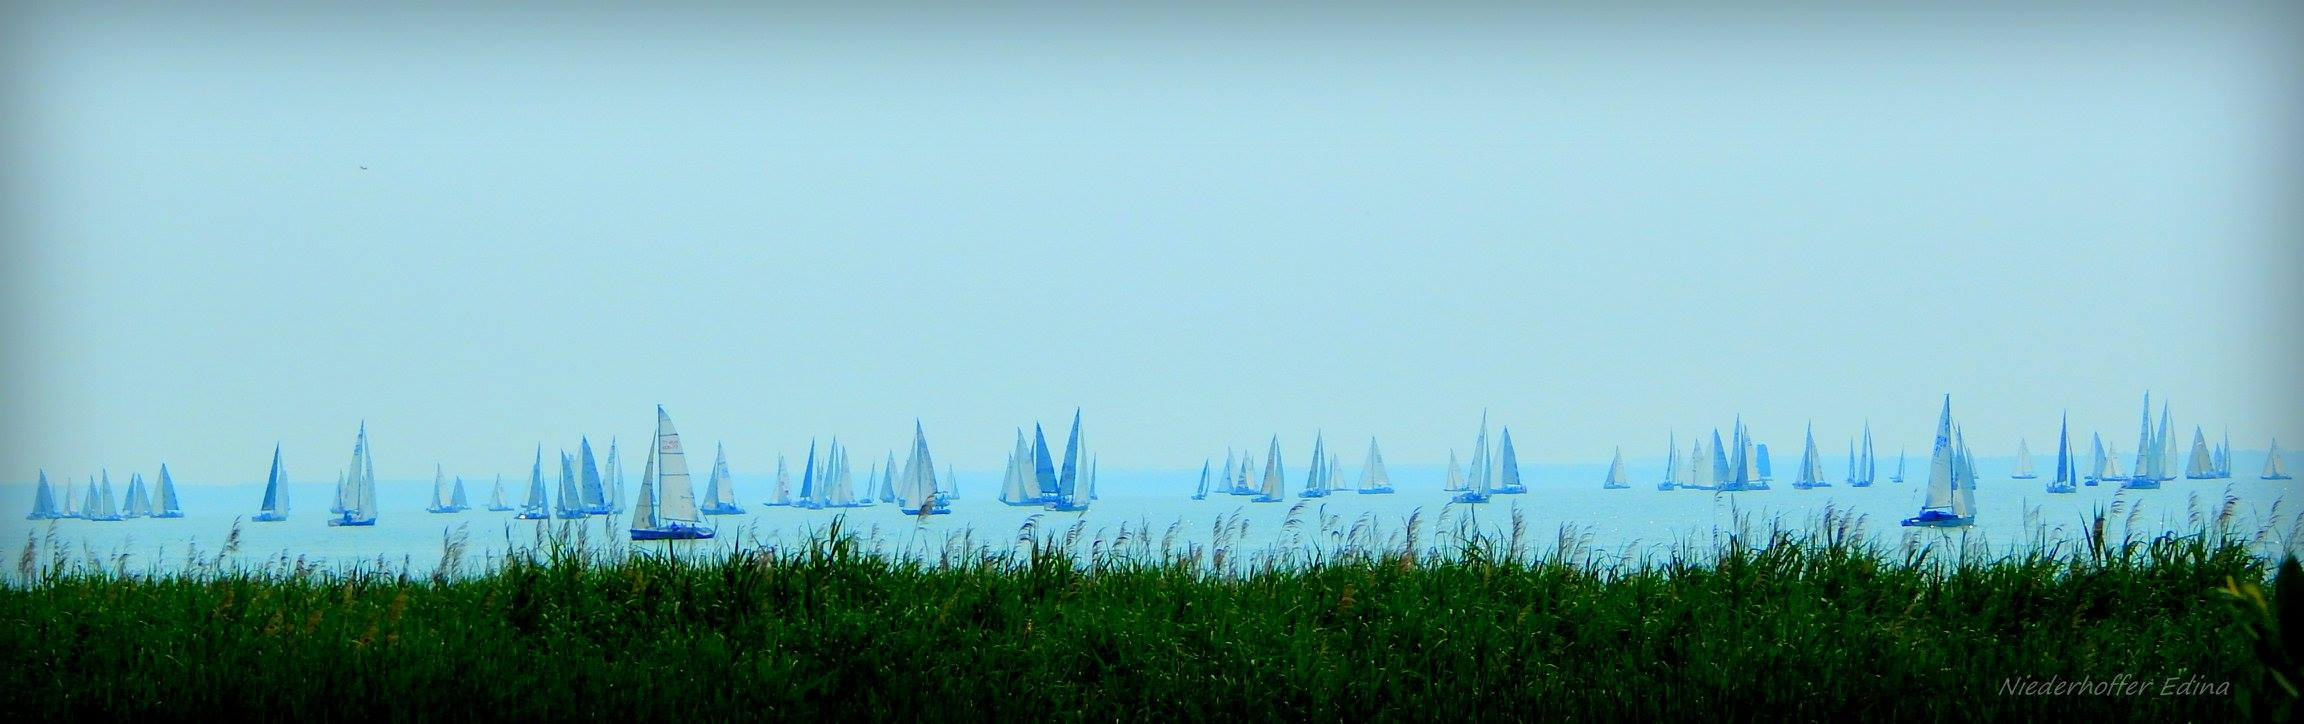 Kékszalag race photographed in 2016 from Balatonfüred.